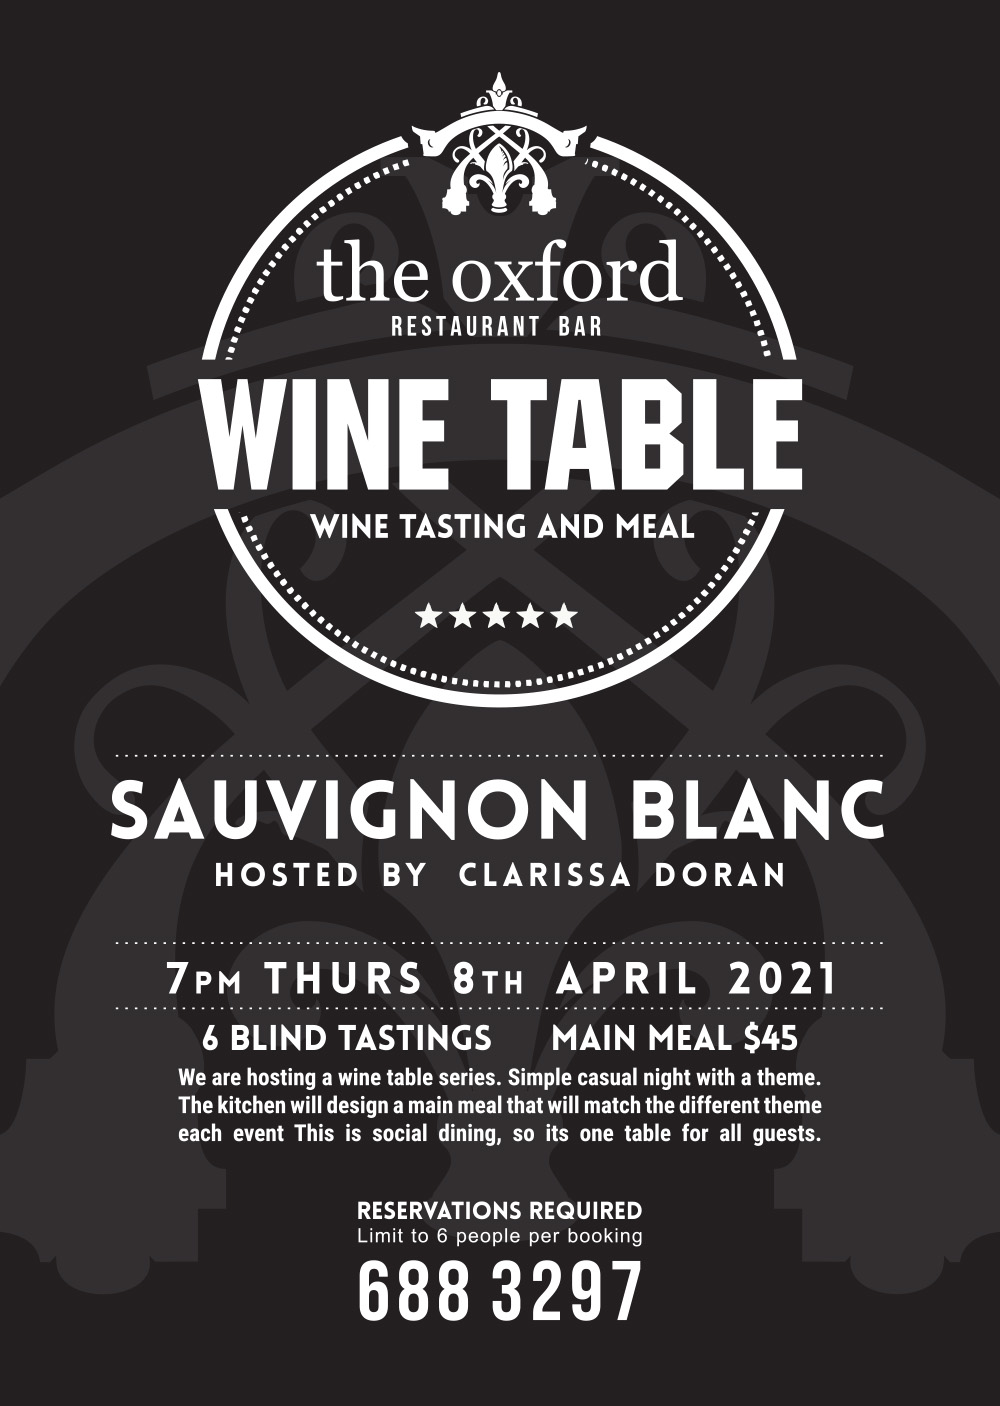 Wine Table Sauvignon Blanc